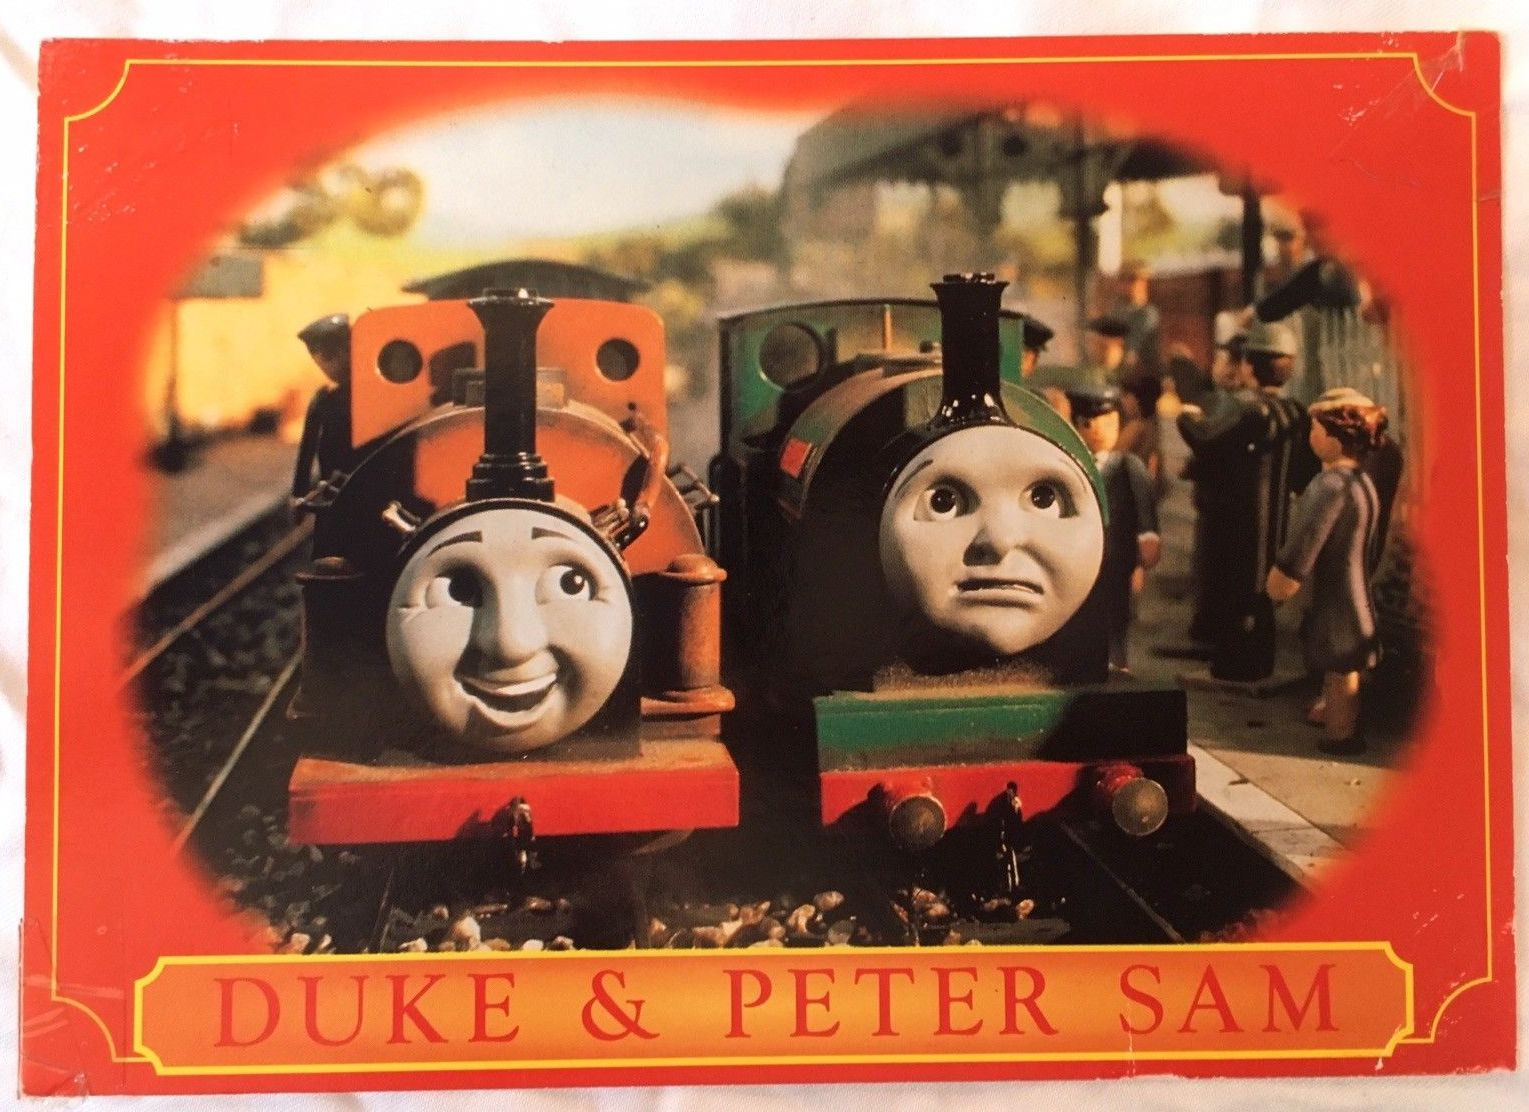 File:DukeandPeterSamPostcard.jpeg